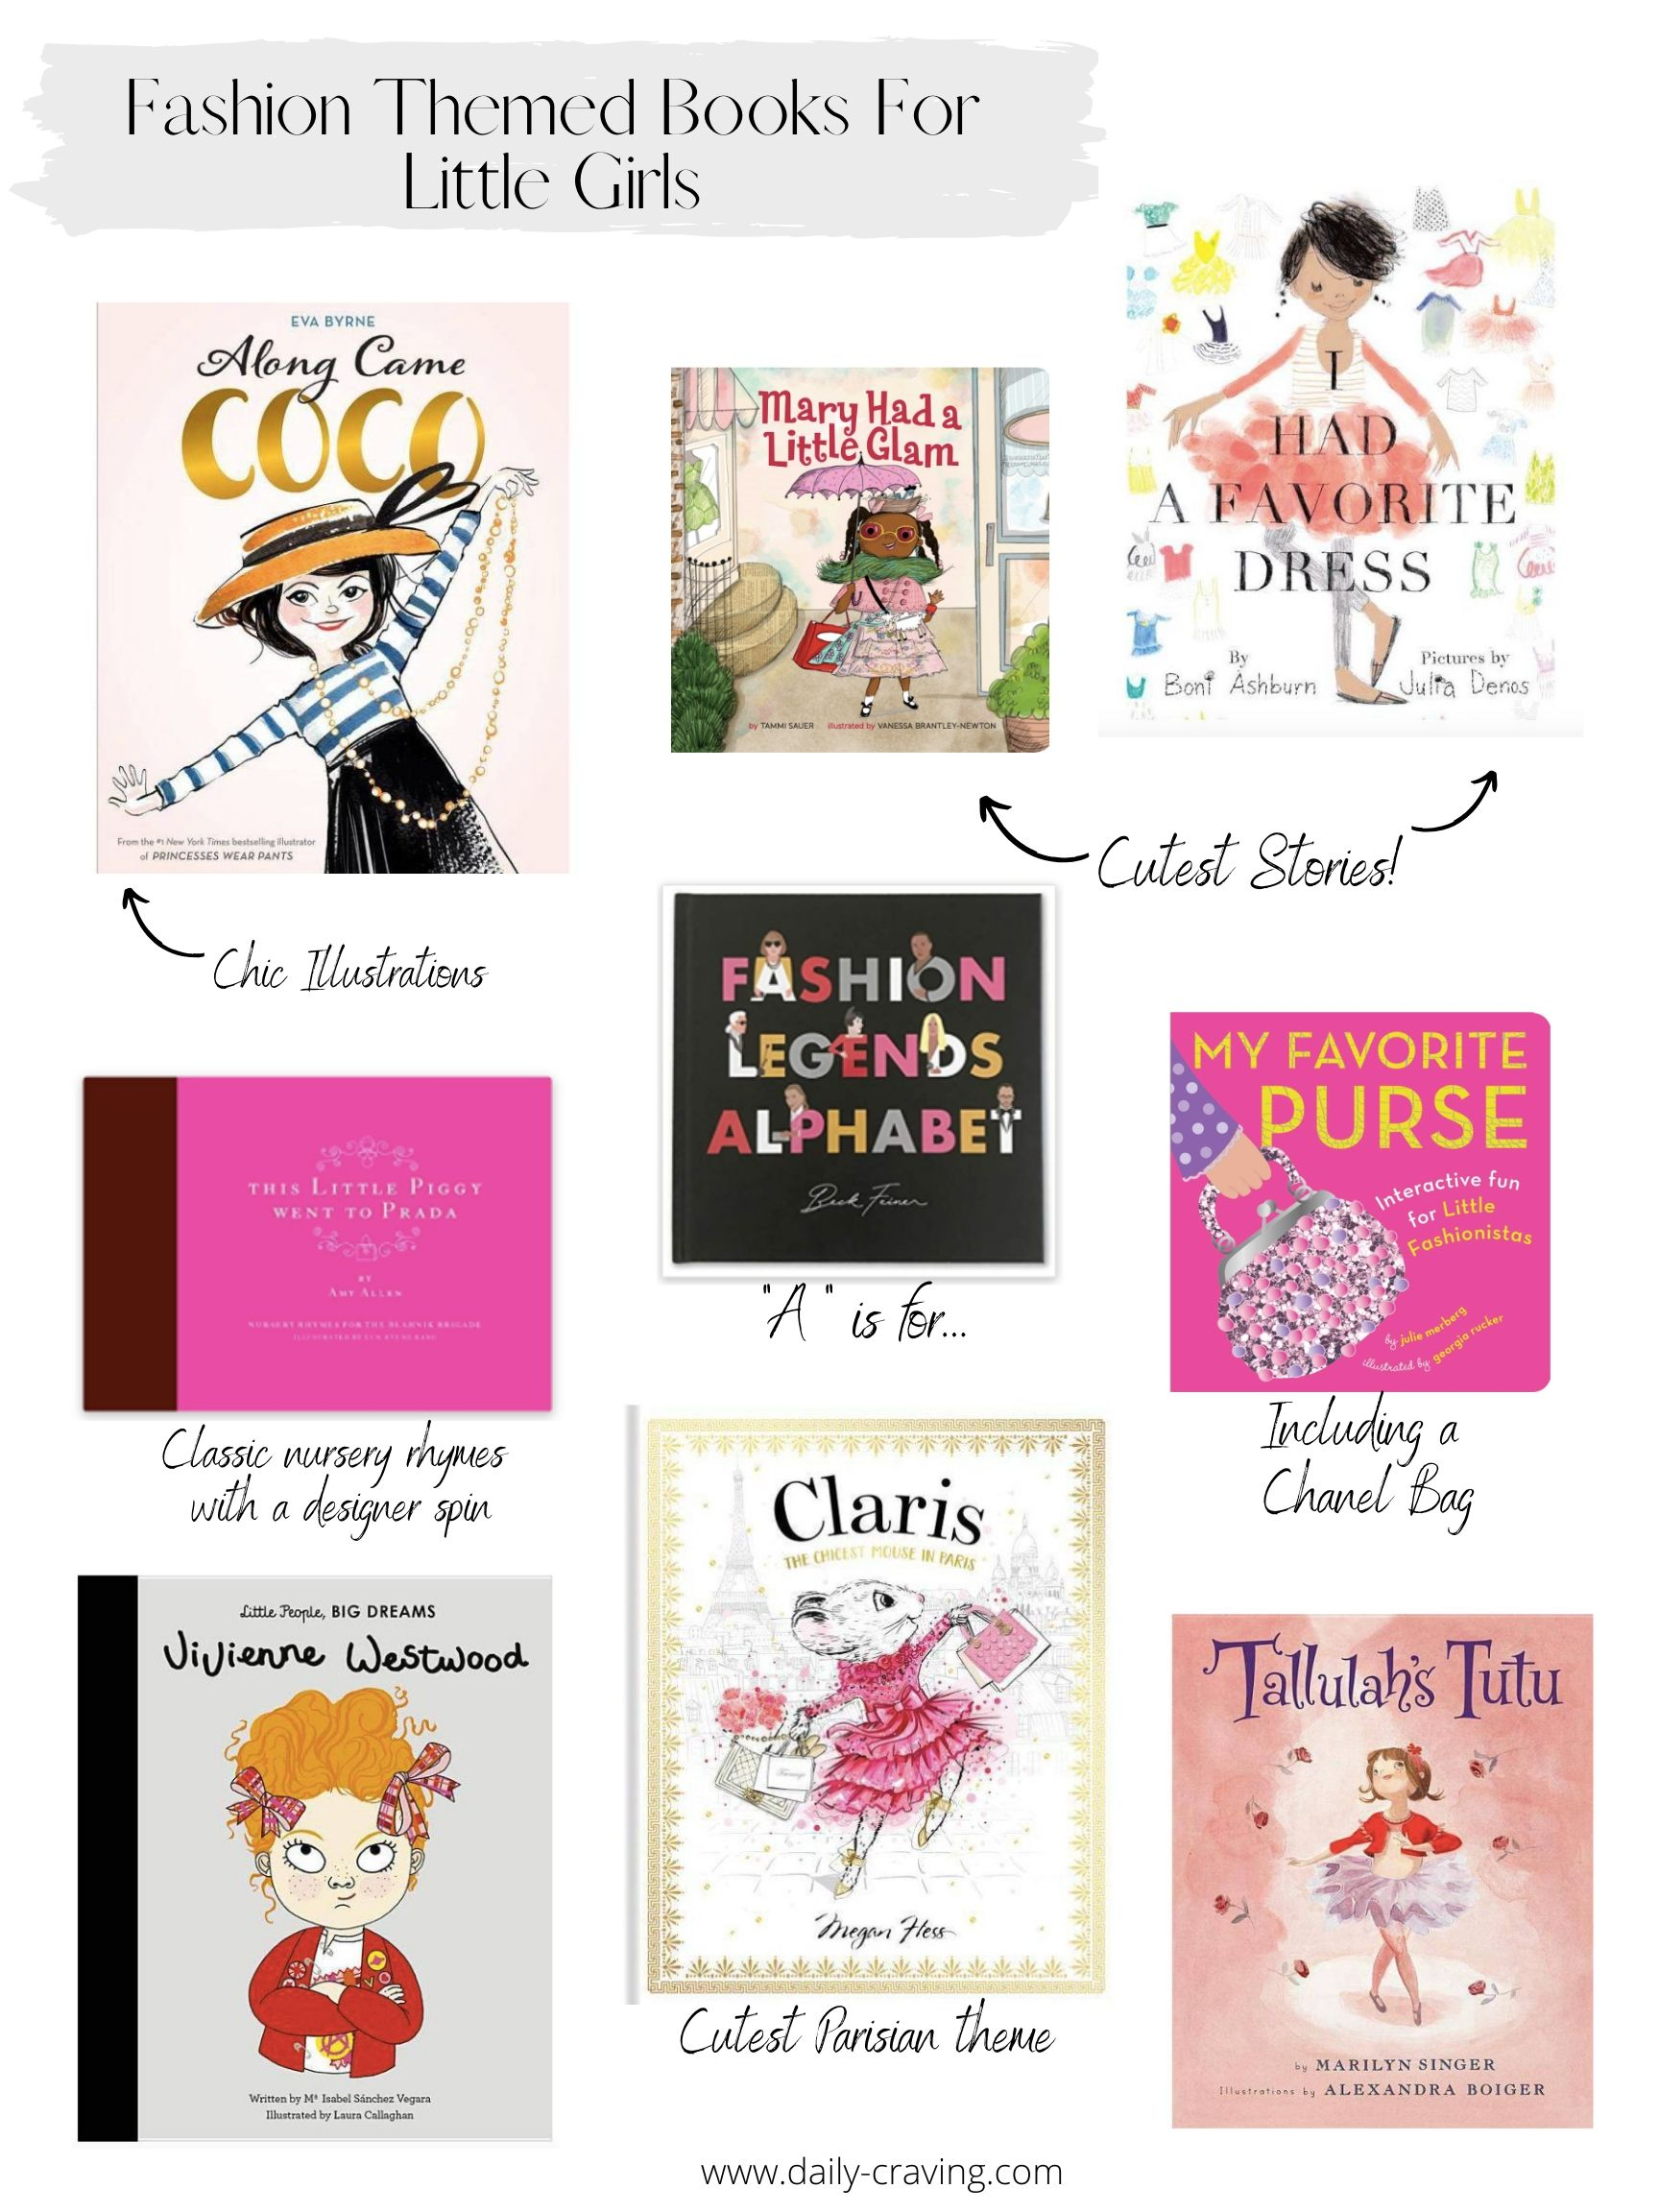 Fashion themed books for little girls | Daily Craving